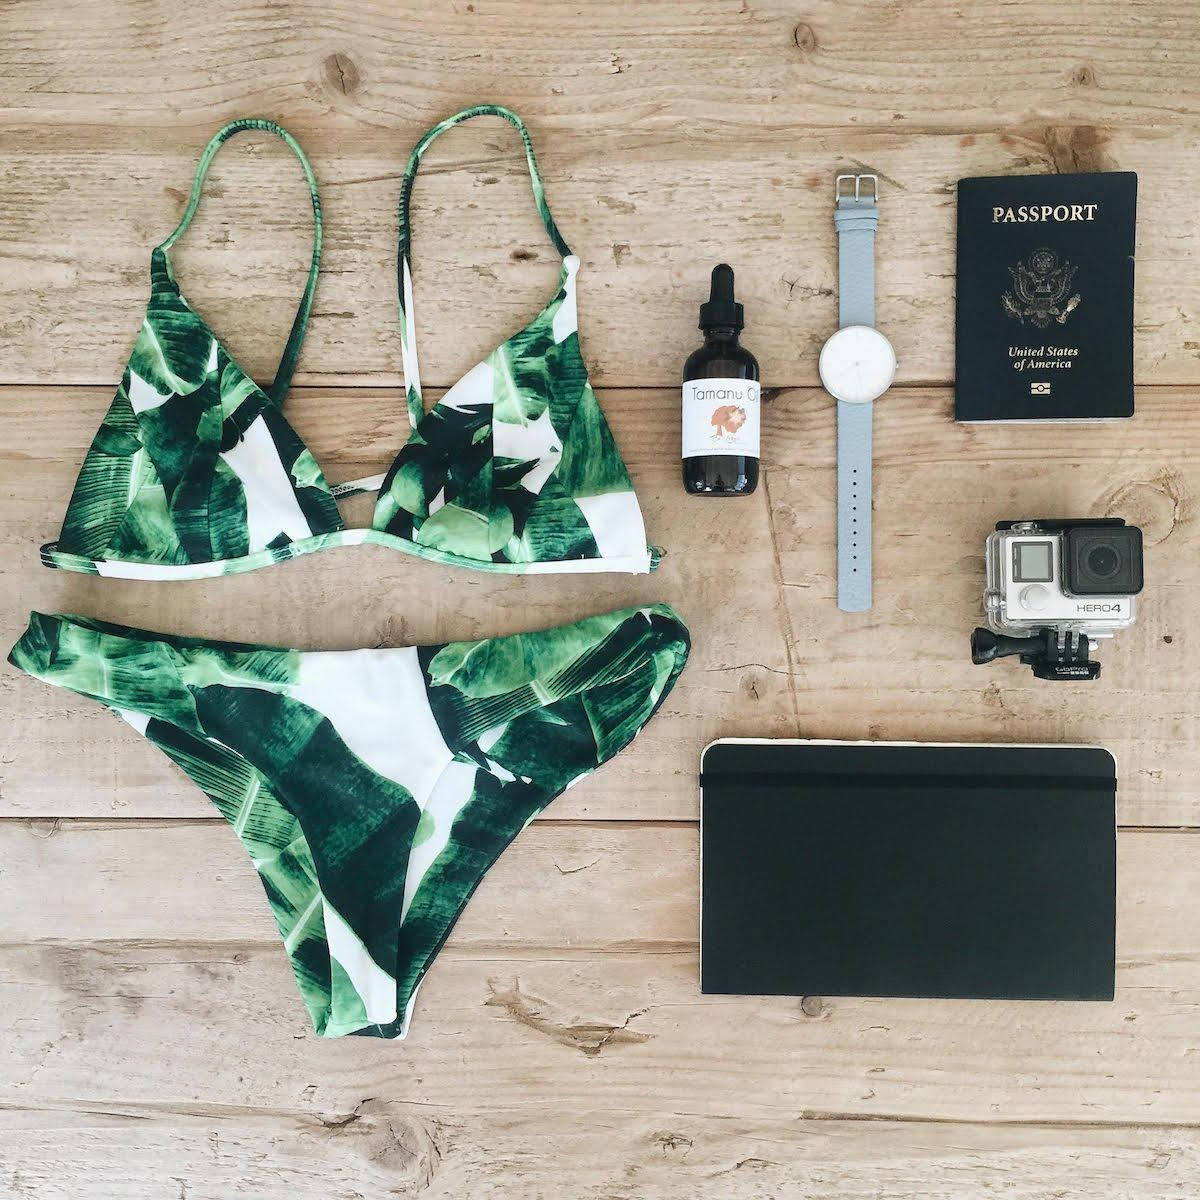 Stone Fox Swim. Been wanting to get one of their suits for forever but they're so expensivo :(